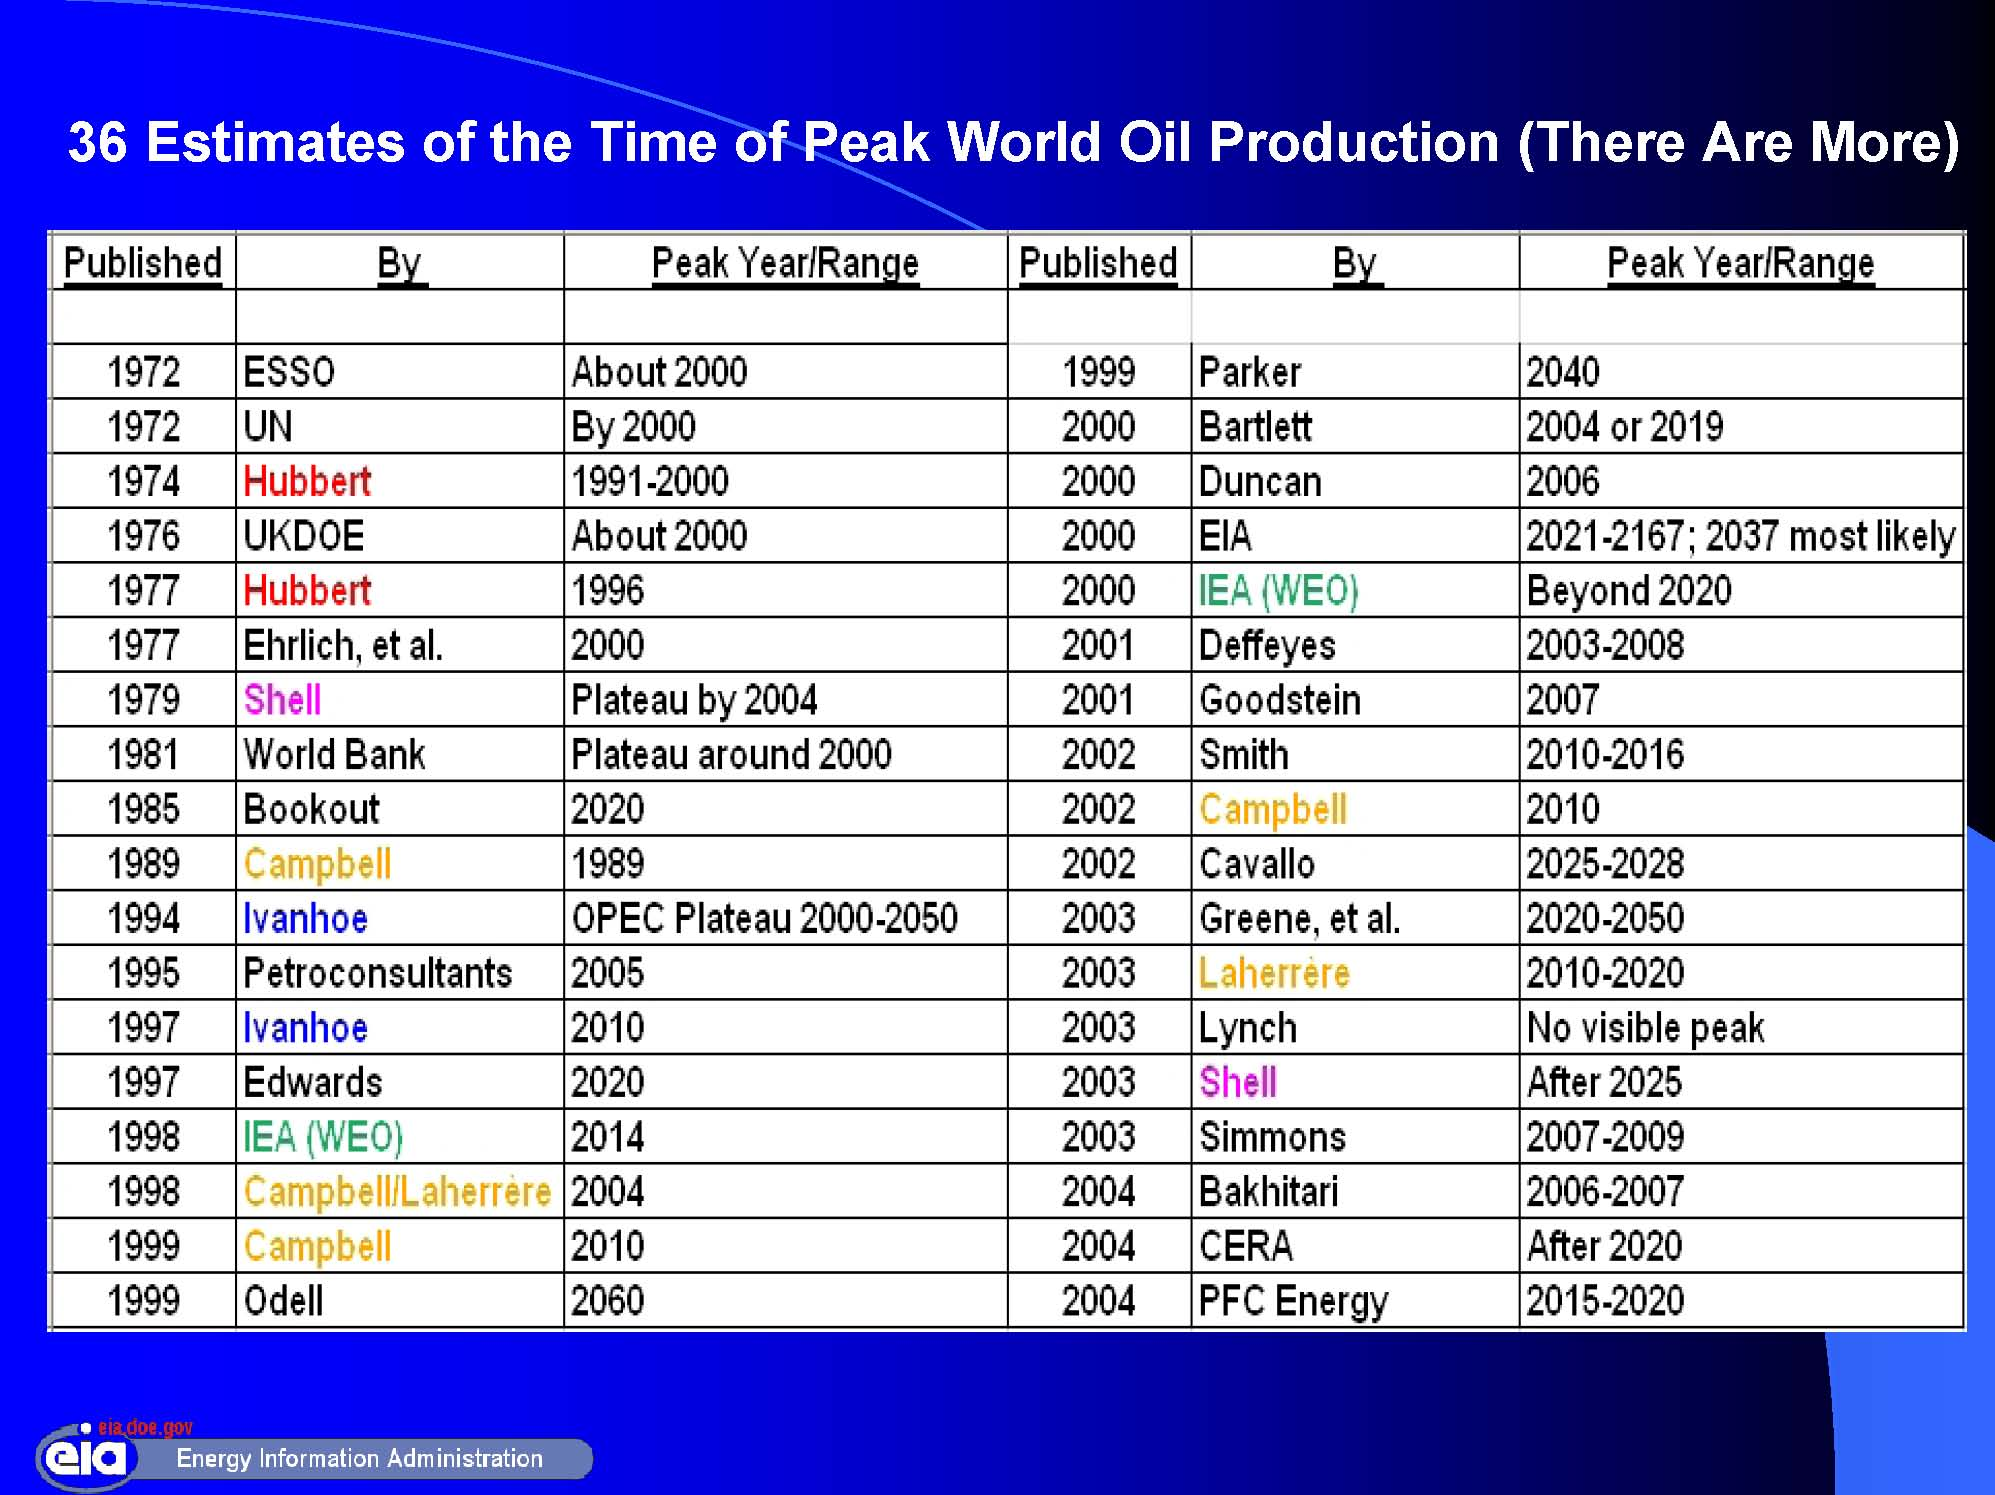 Estimates of Peak World Oil Production.jpg